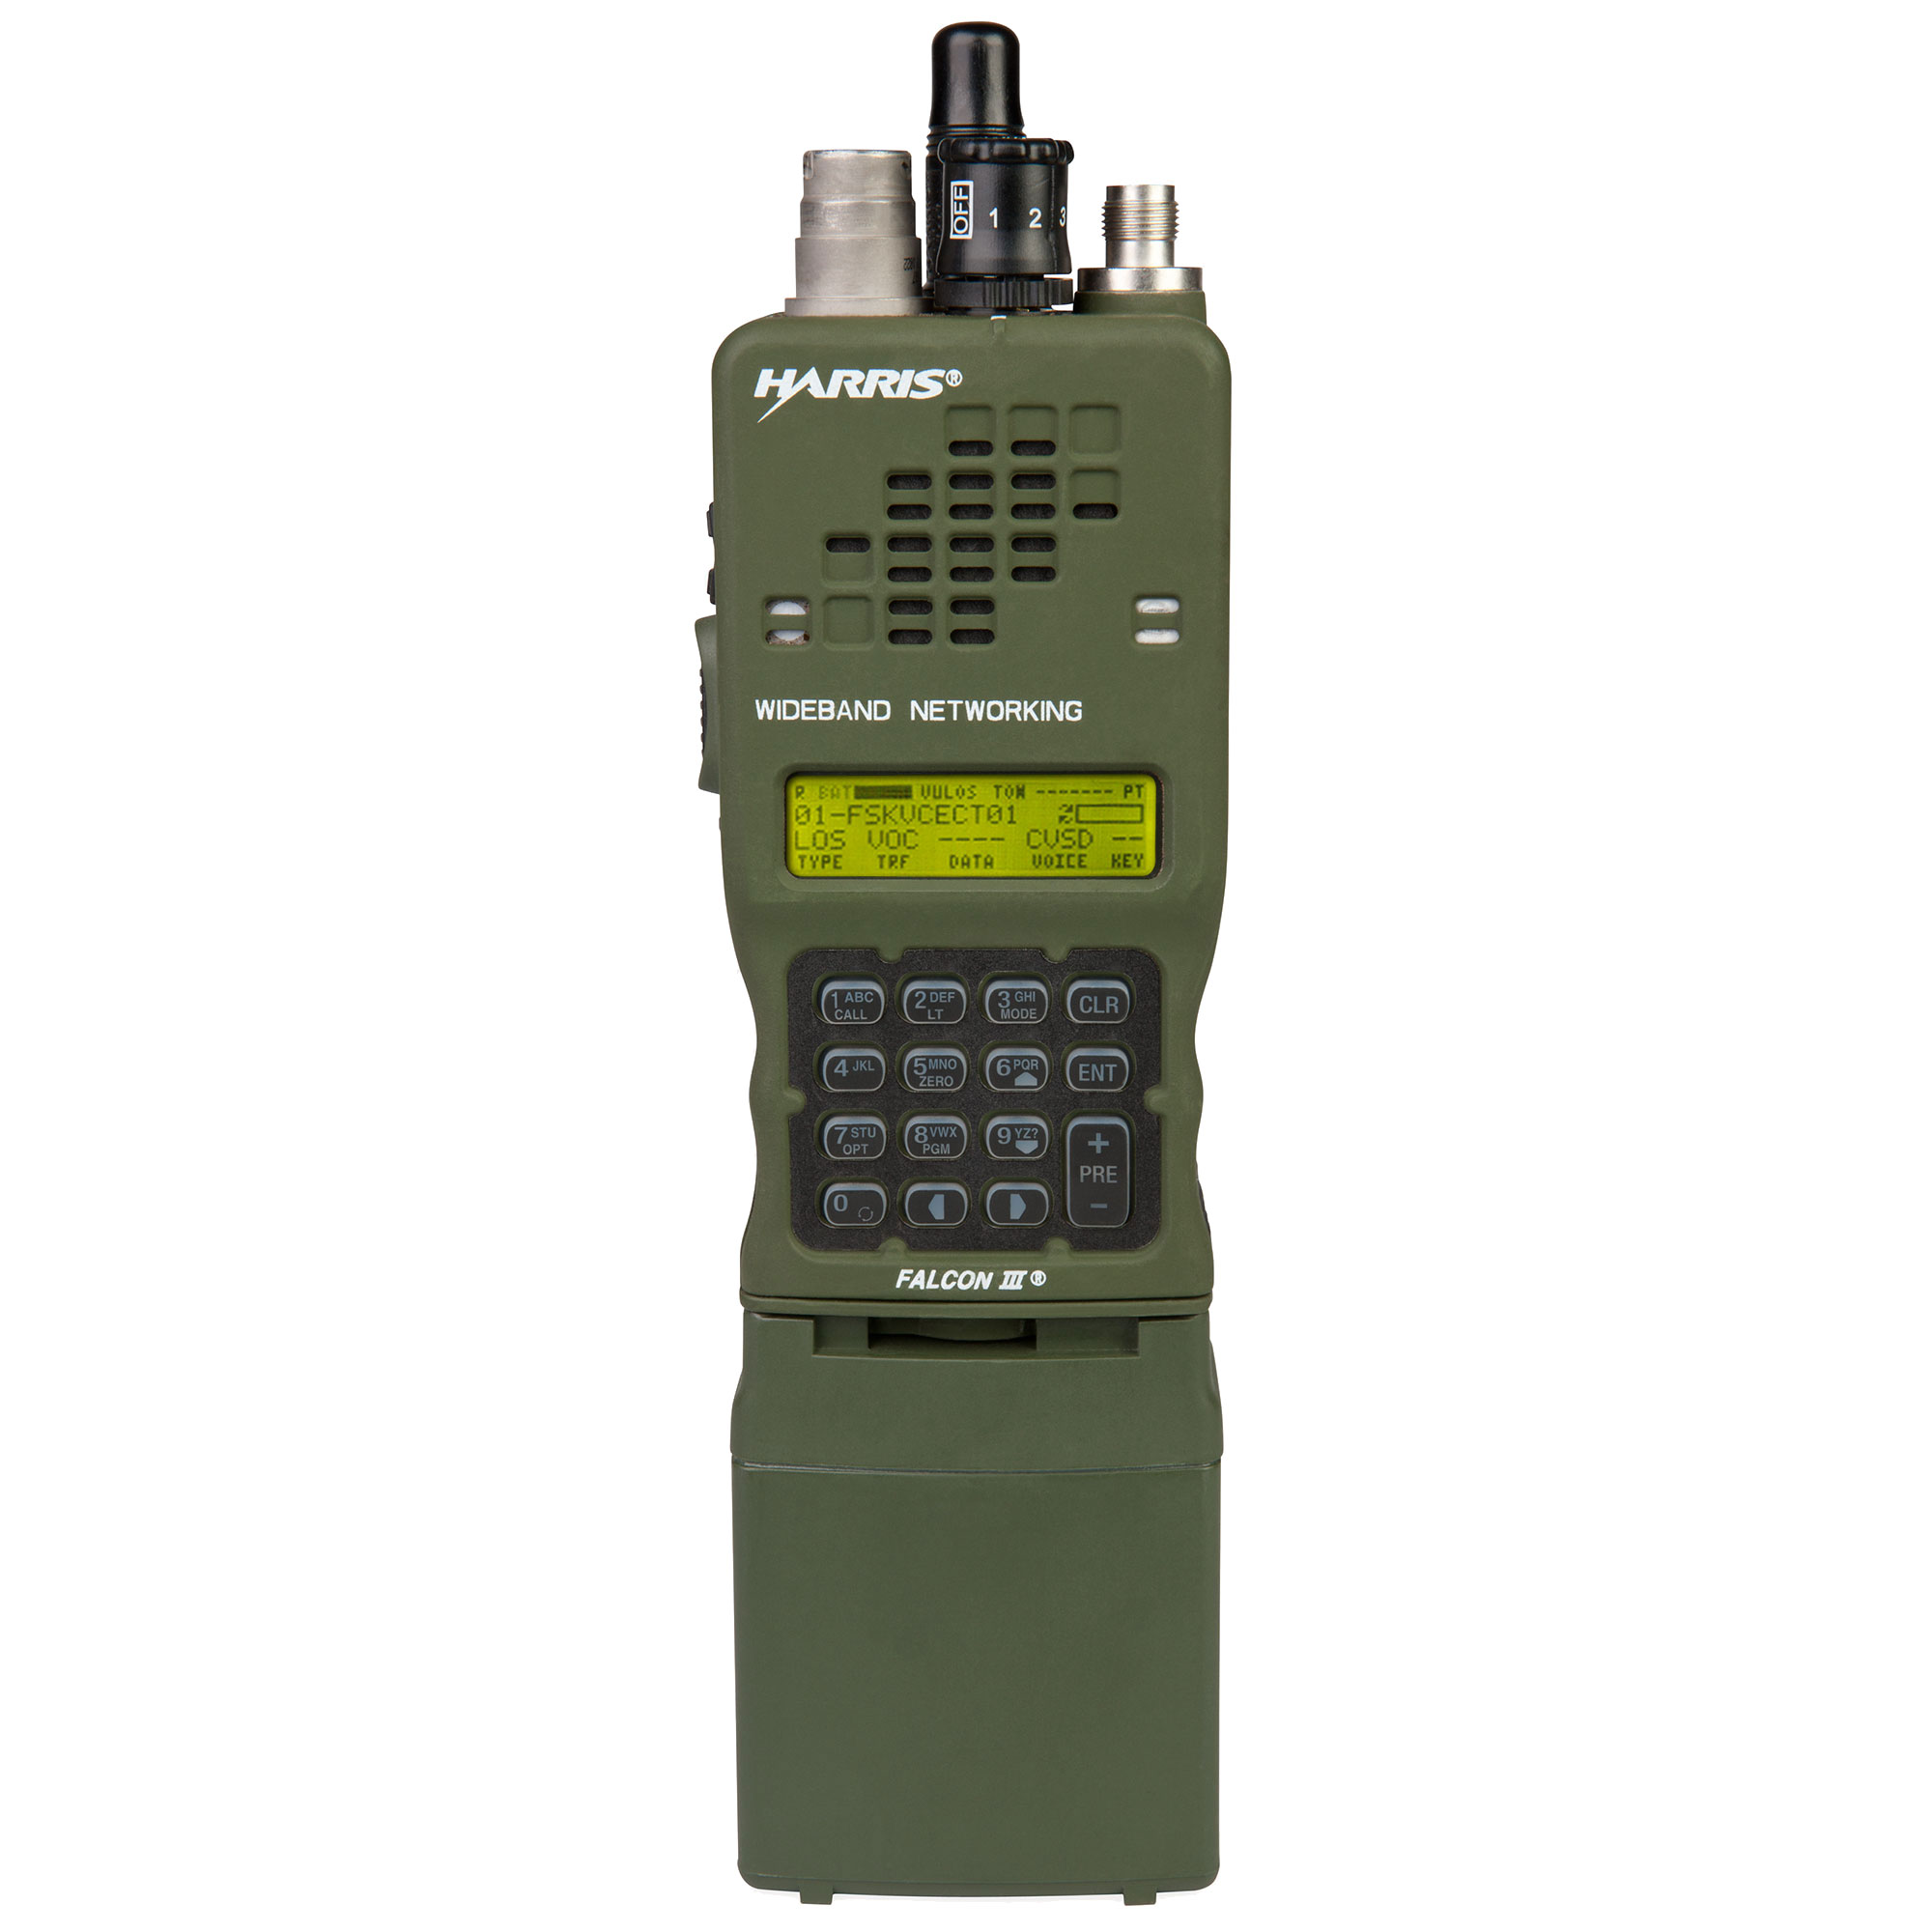 L3Harris Falcon III® AN/PRC-152A Wideband Networking Handheld Radio